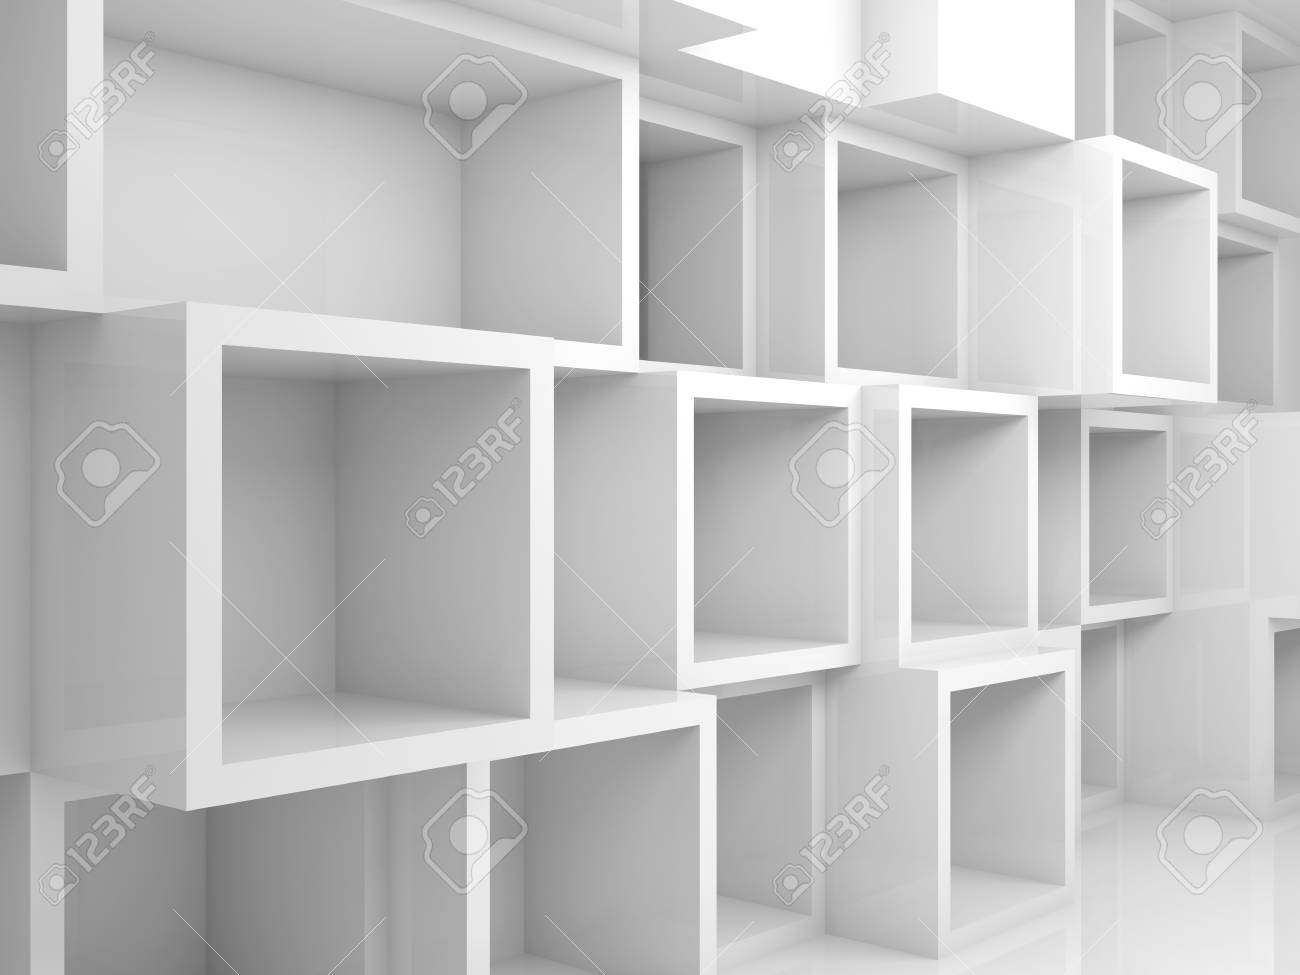 abstract empty 3d interior with white square shelves on the wall rh 123rf com white square shelves ikea white square bookshelves